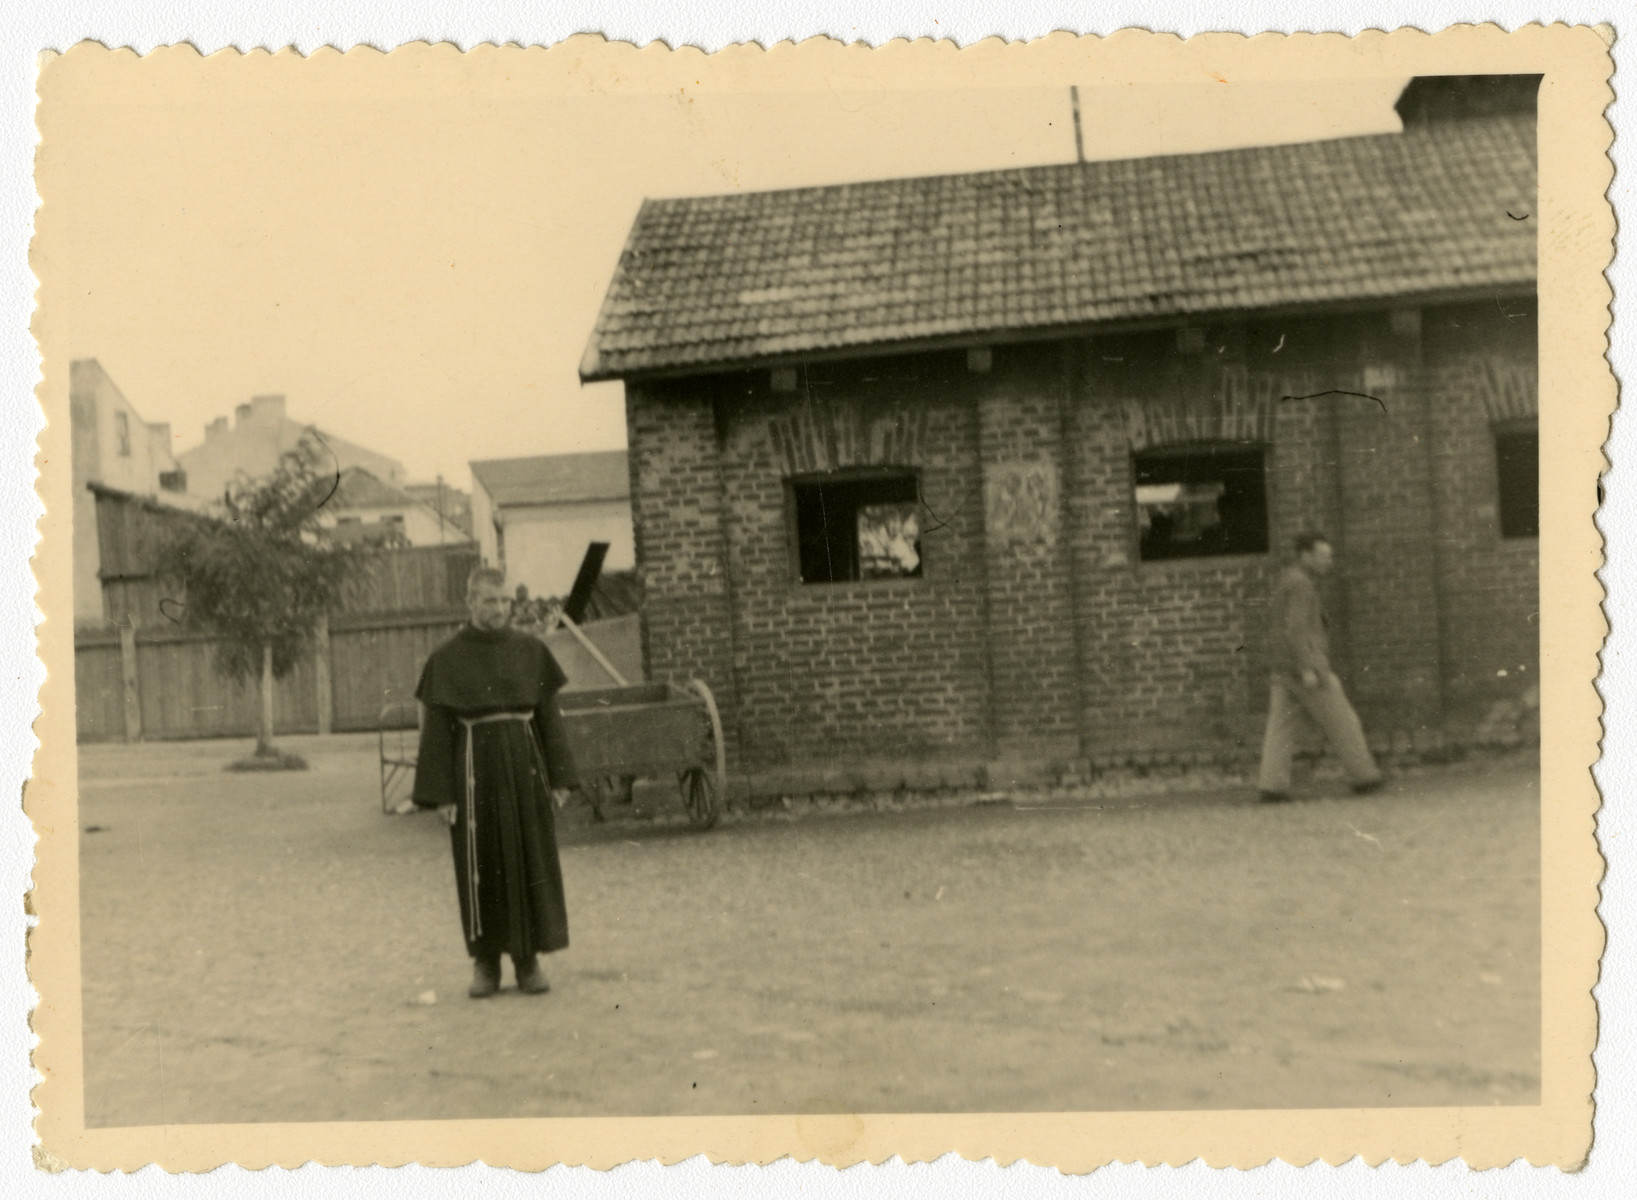 A Polish cleric stands in an open square.  This image is one of twenty-six photographs contained in an album found by Jacob Igra in an apartment in Sosnowiec after the war. Many of the photographs are believed to have been taken by a soldier with the SD-SIPO (Sicherheitspolizei) following the invasion of Poland in 1939. Additional photographs depict einsatzgruppen activities at sites throughout Nazi occupied Eastern Europe and may have been later additions to the album.